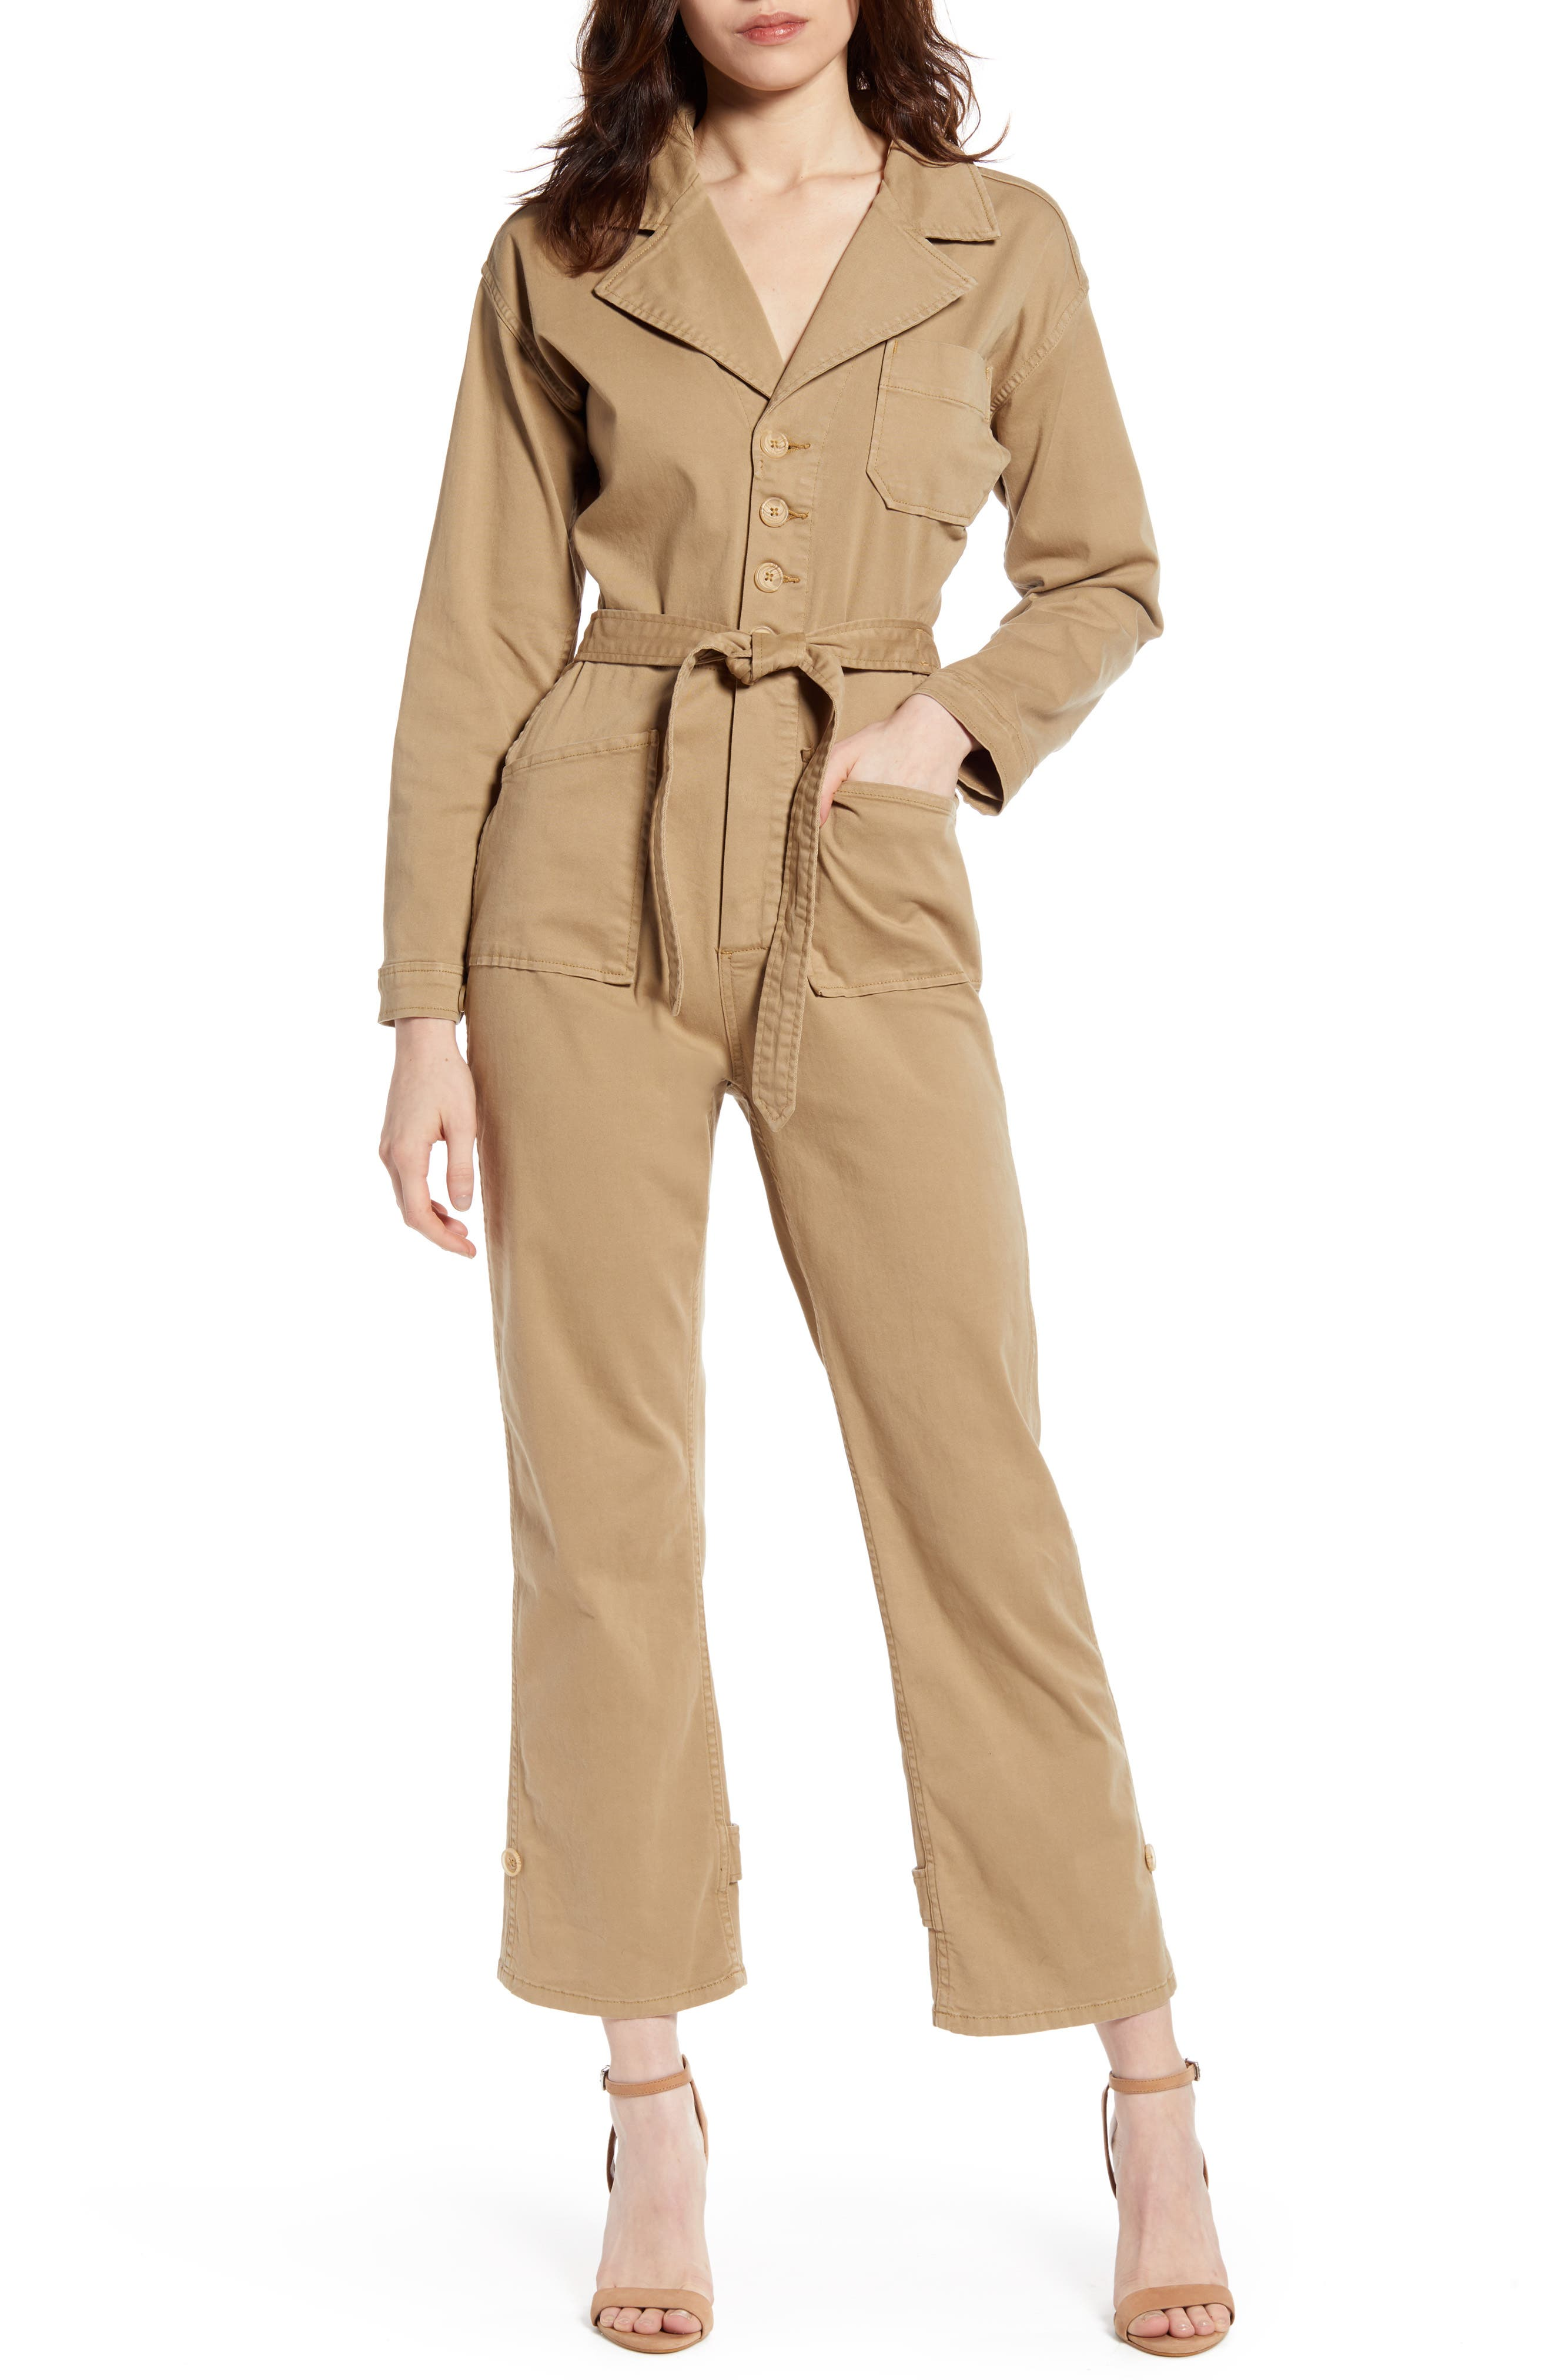 Image of Good American Khaki Jumpsuit With Pockets